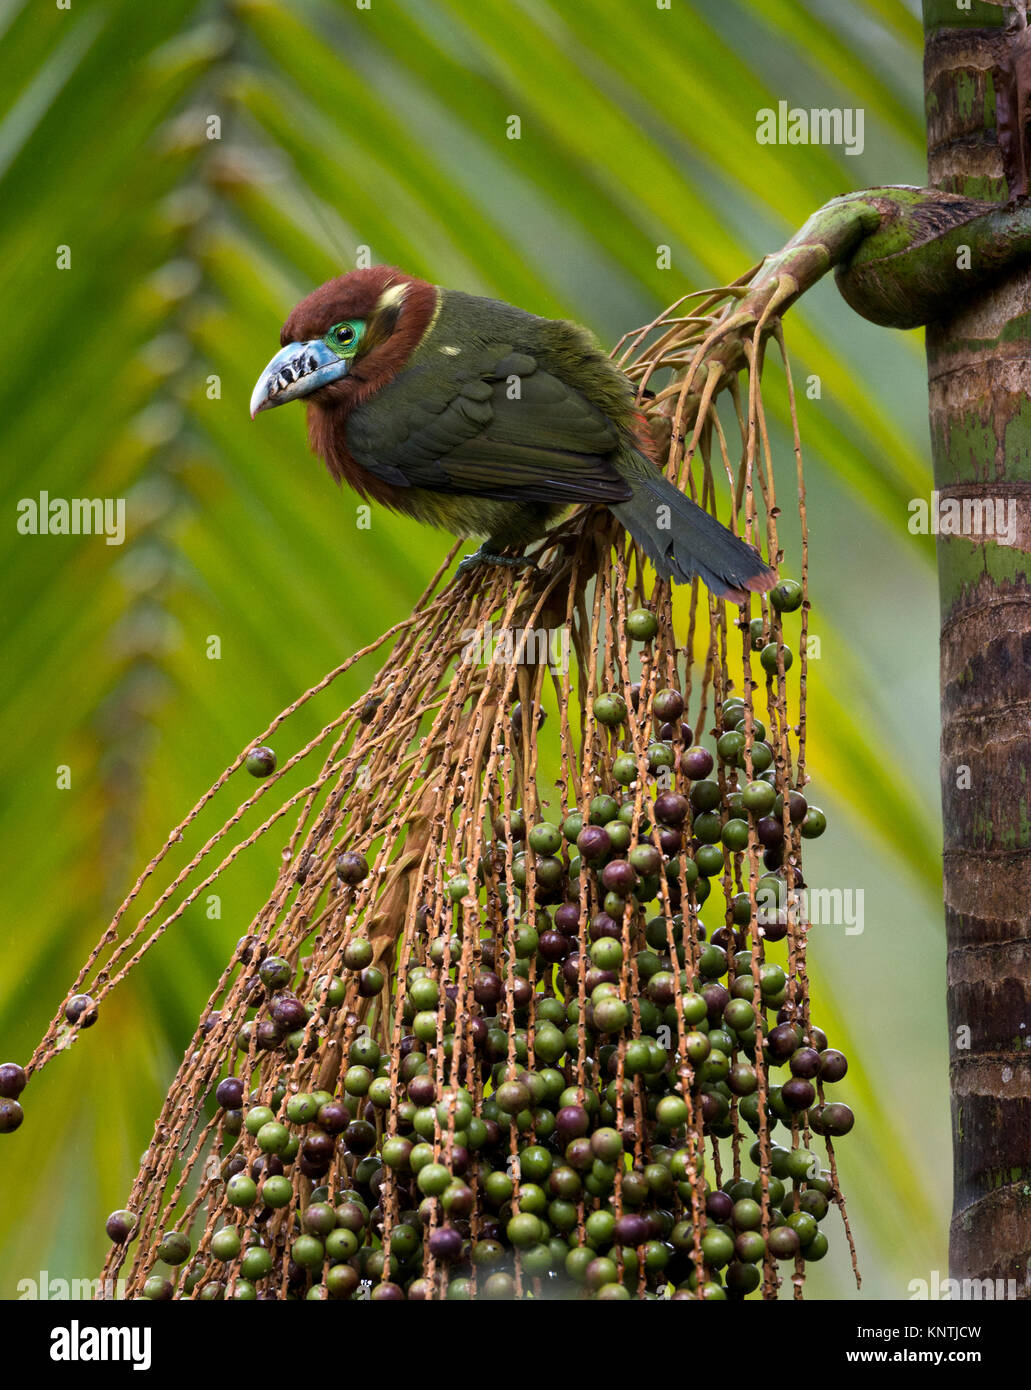 Spot-billed Toucanet feeding on the Palmito fruit in the Atlantic Rainforest of SE Brazil - Stock Image